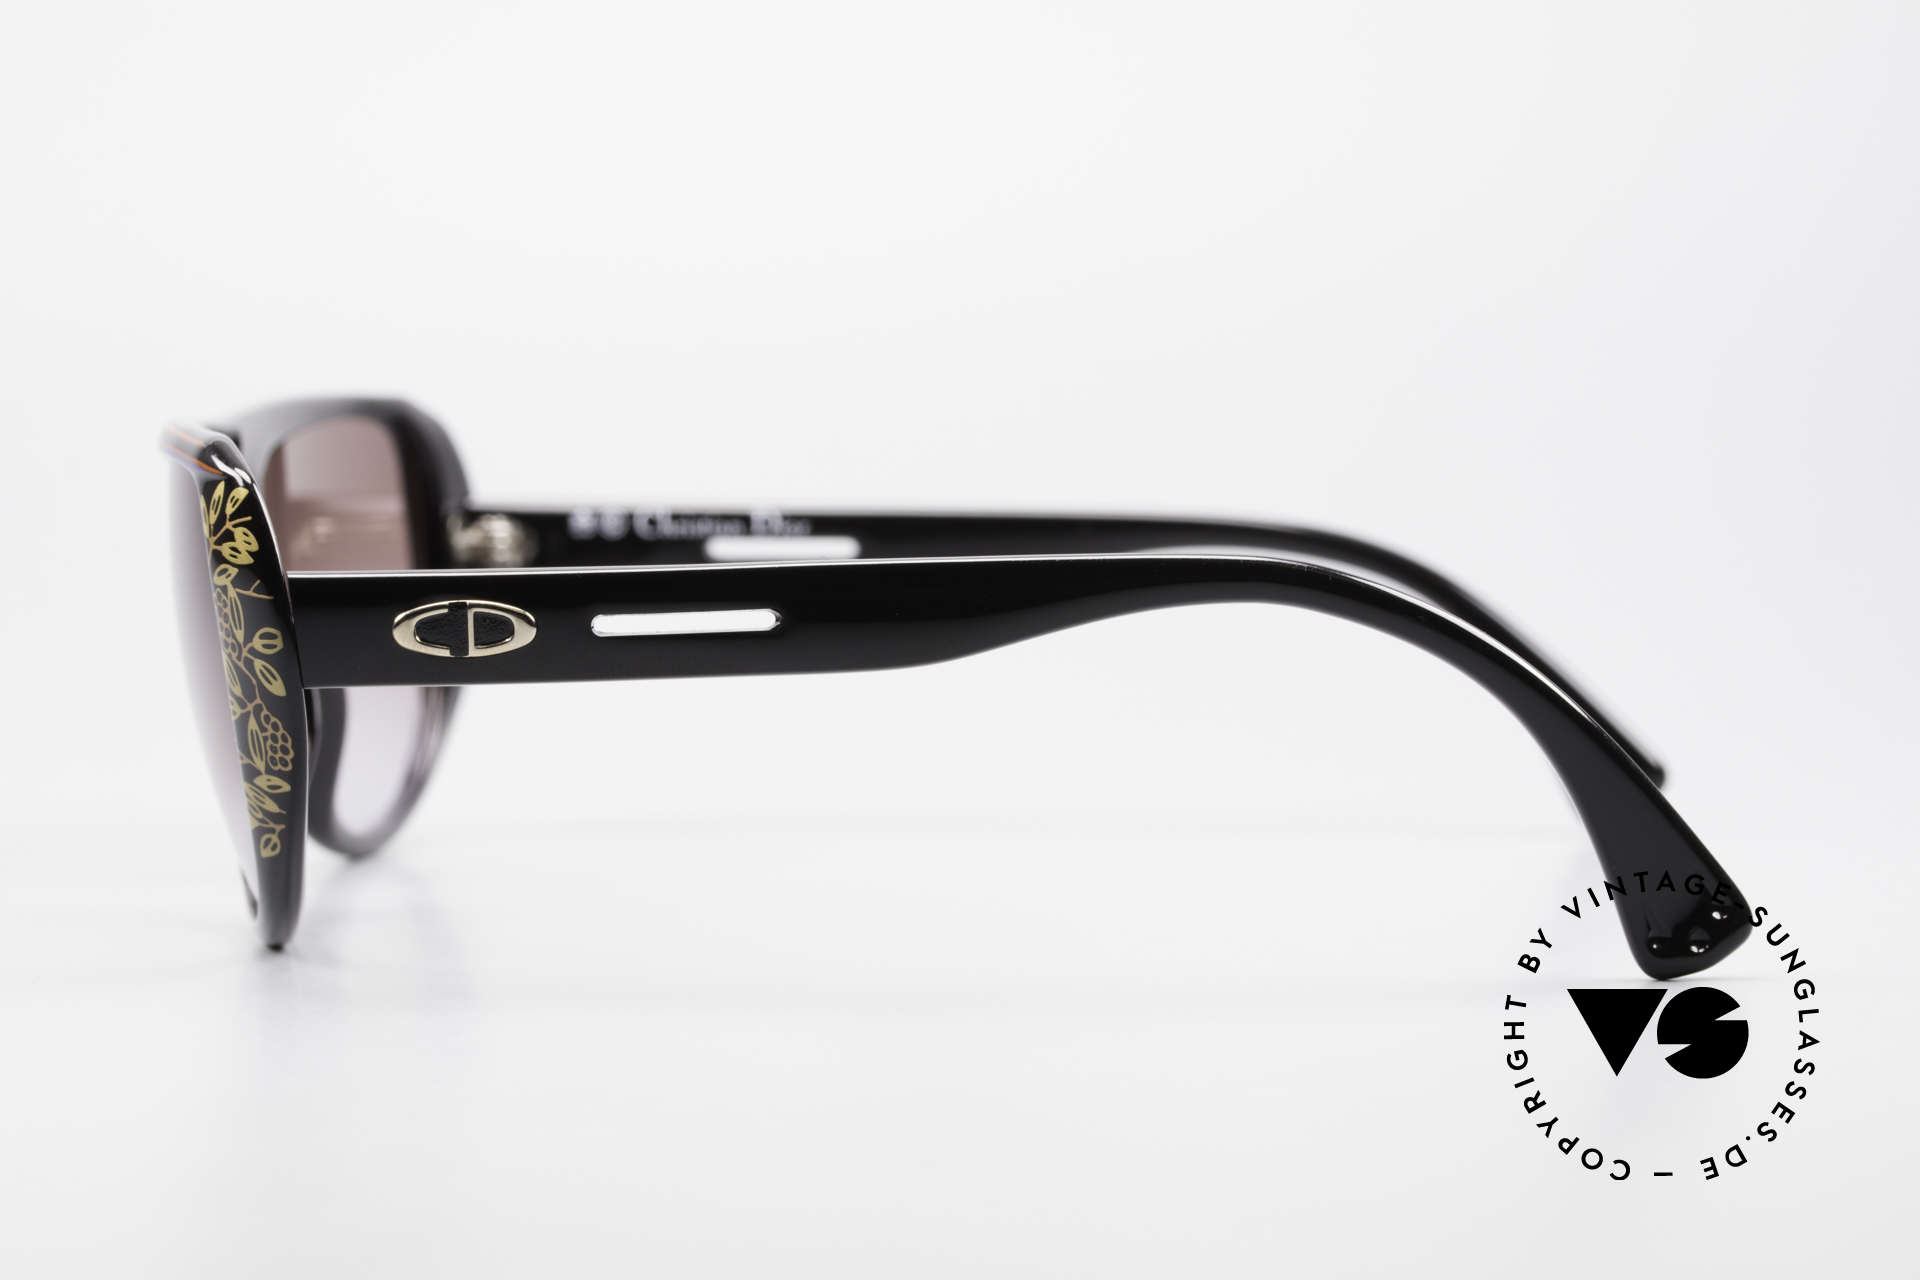 Christian Dior 2421 Ladies Sunglasses 80's Optyl, sophisticated sunglasses and a true vintage RARITY!, Made for Women